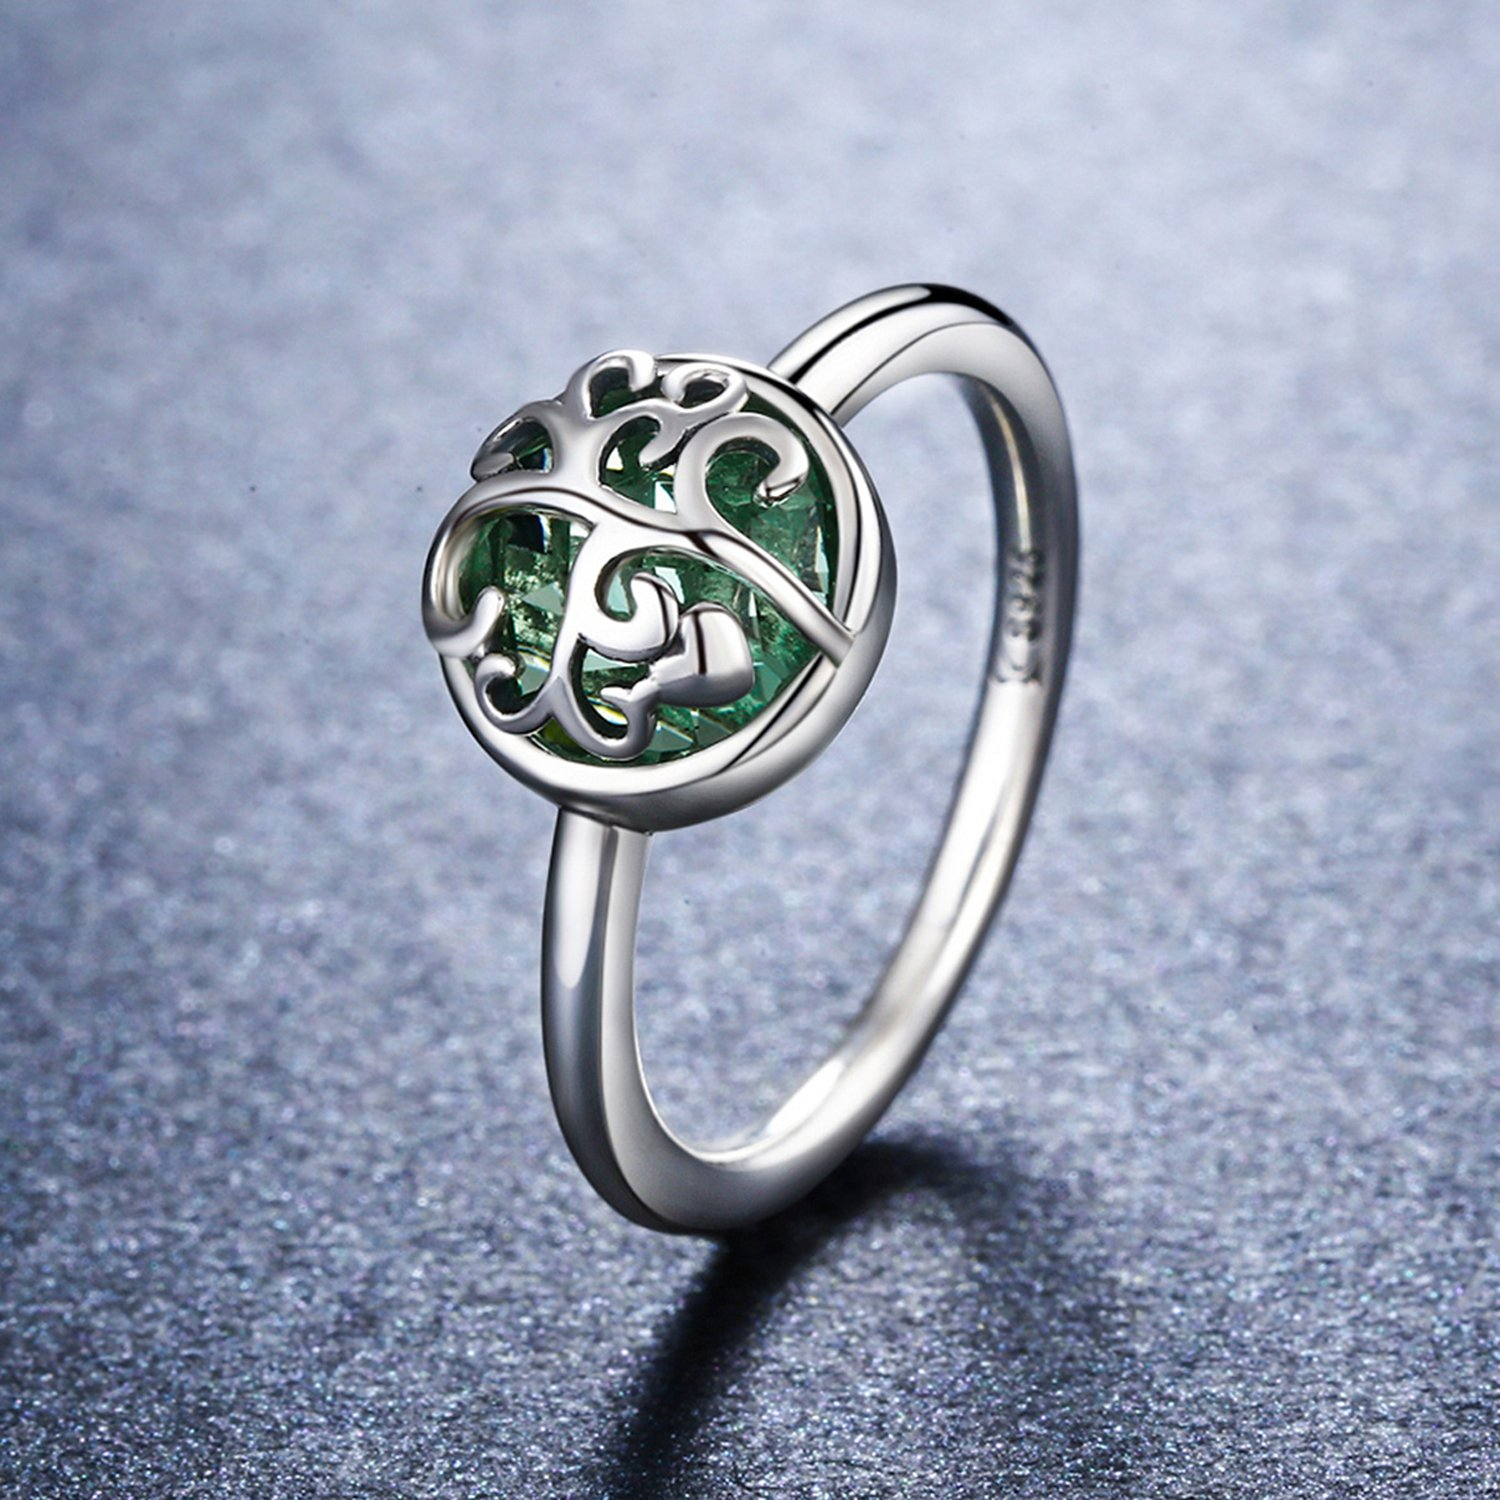 925-Sterling-Silver-Family-Tree-of-Life-Green-Birthstone-Crystal-Ring-Healing-Ring-Gift-for-Women-Jewelry